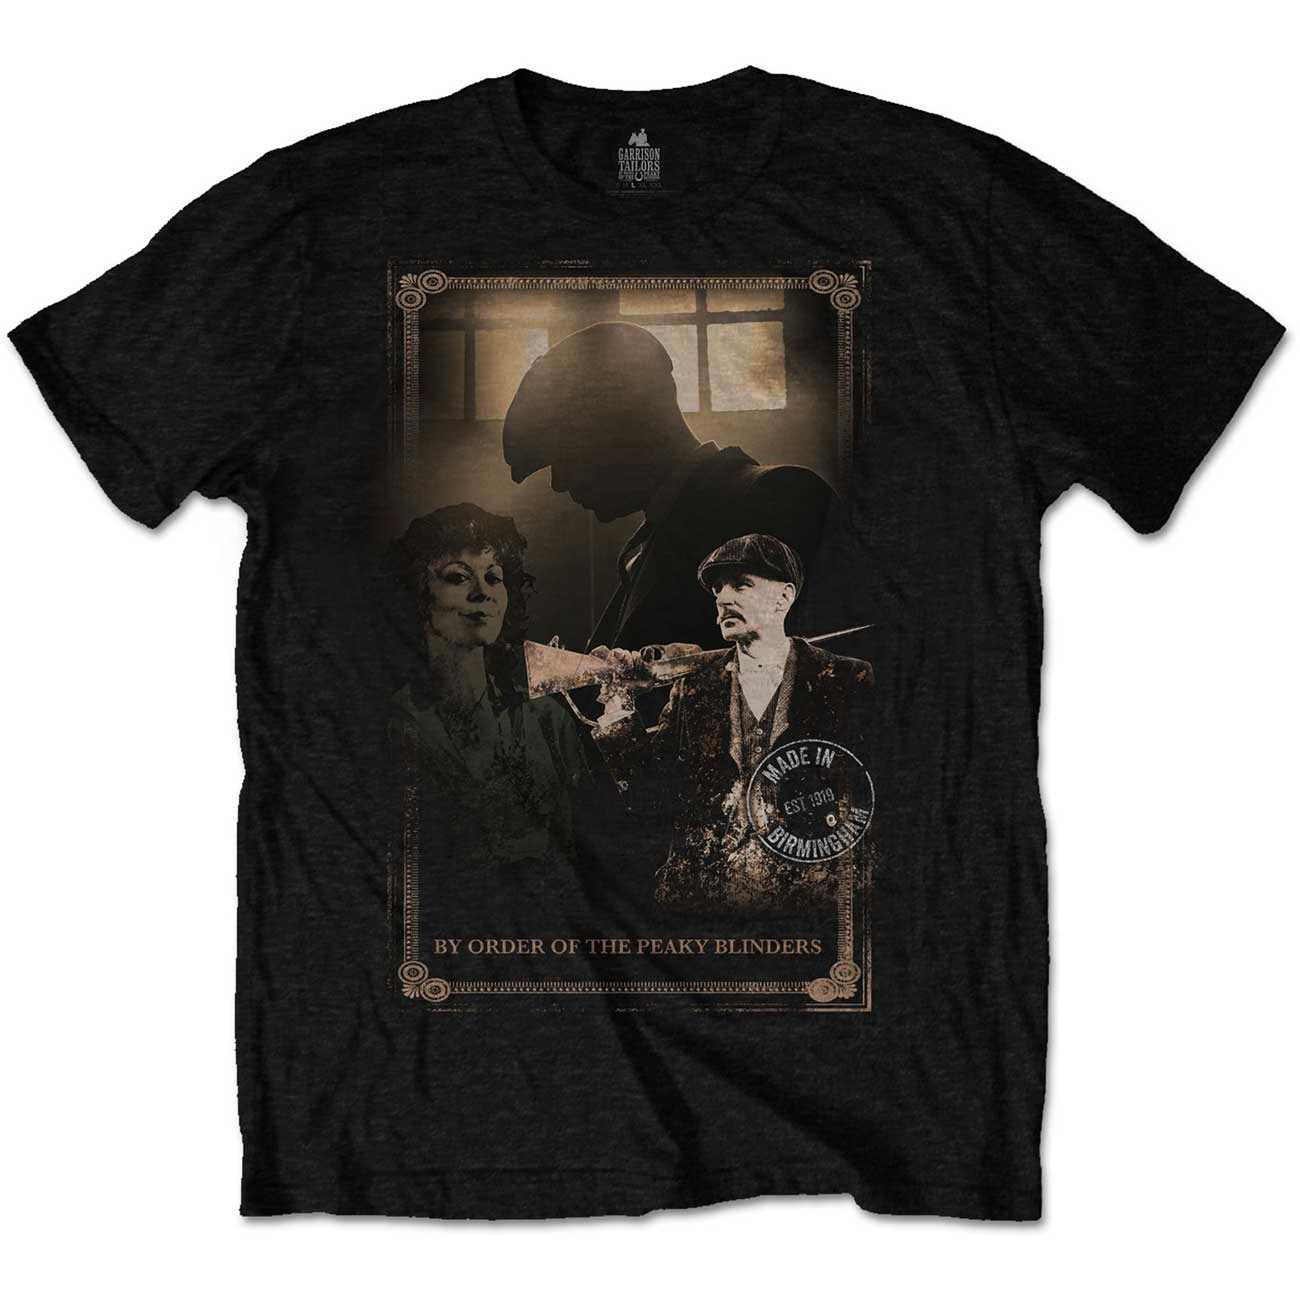 Official-T-Shirt-PEAKY-BLINDERS-Shelby-Brothers-039-Shotgun-039-Black-All-Sizes thumbnail 11